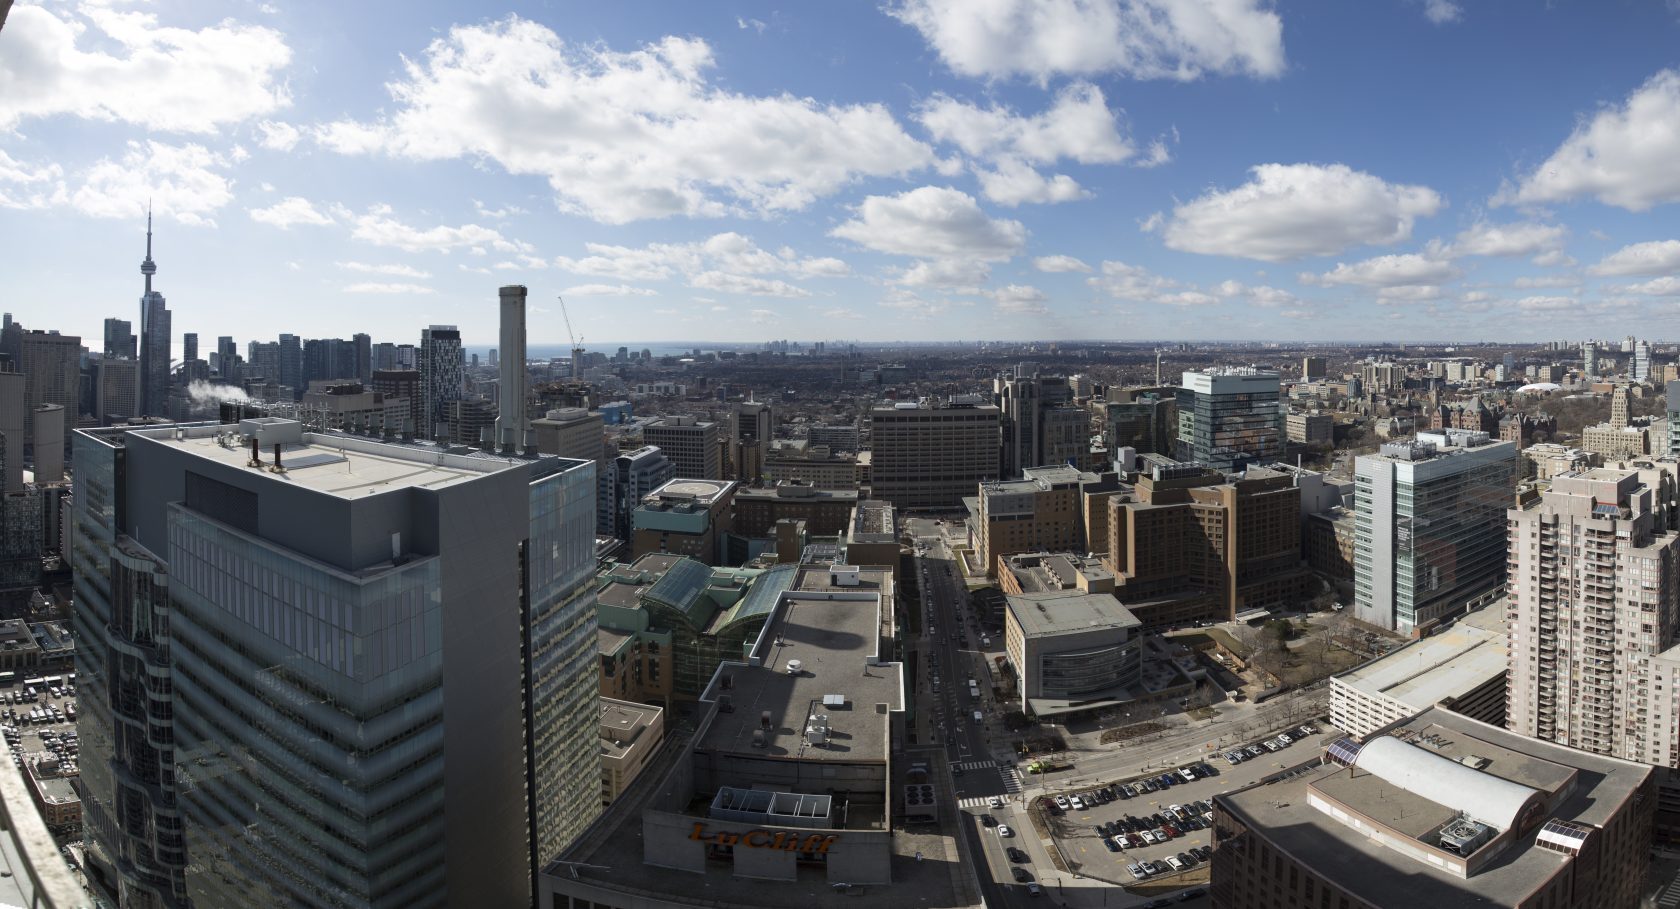 West side view from 43rd floor